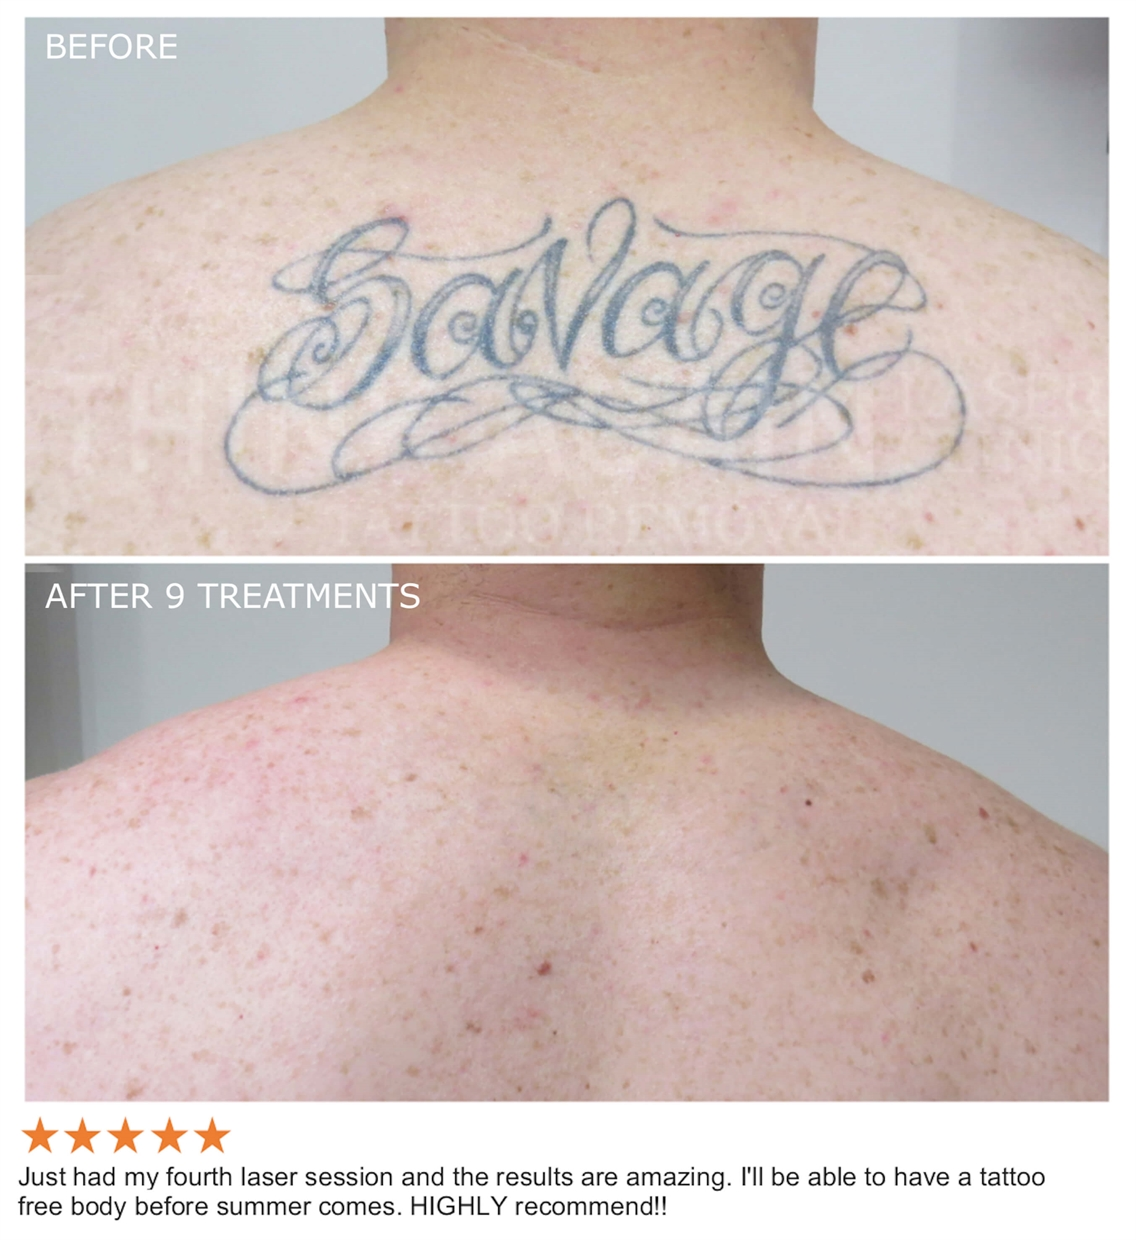 Laser Tattoo Removal Sydney - The #1 Rated Tattoo Removal Clinic